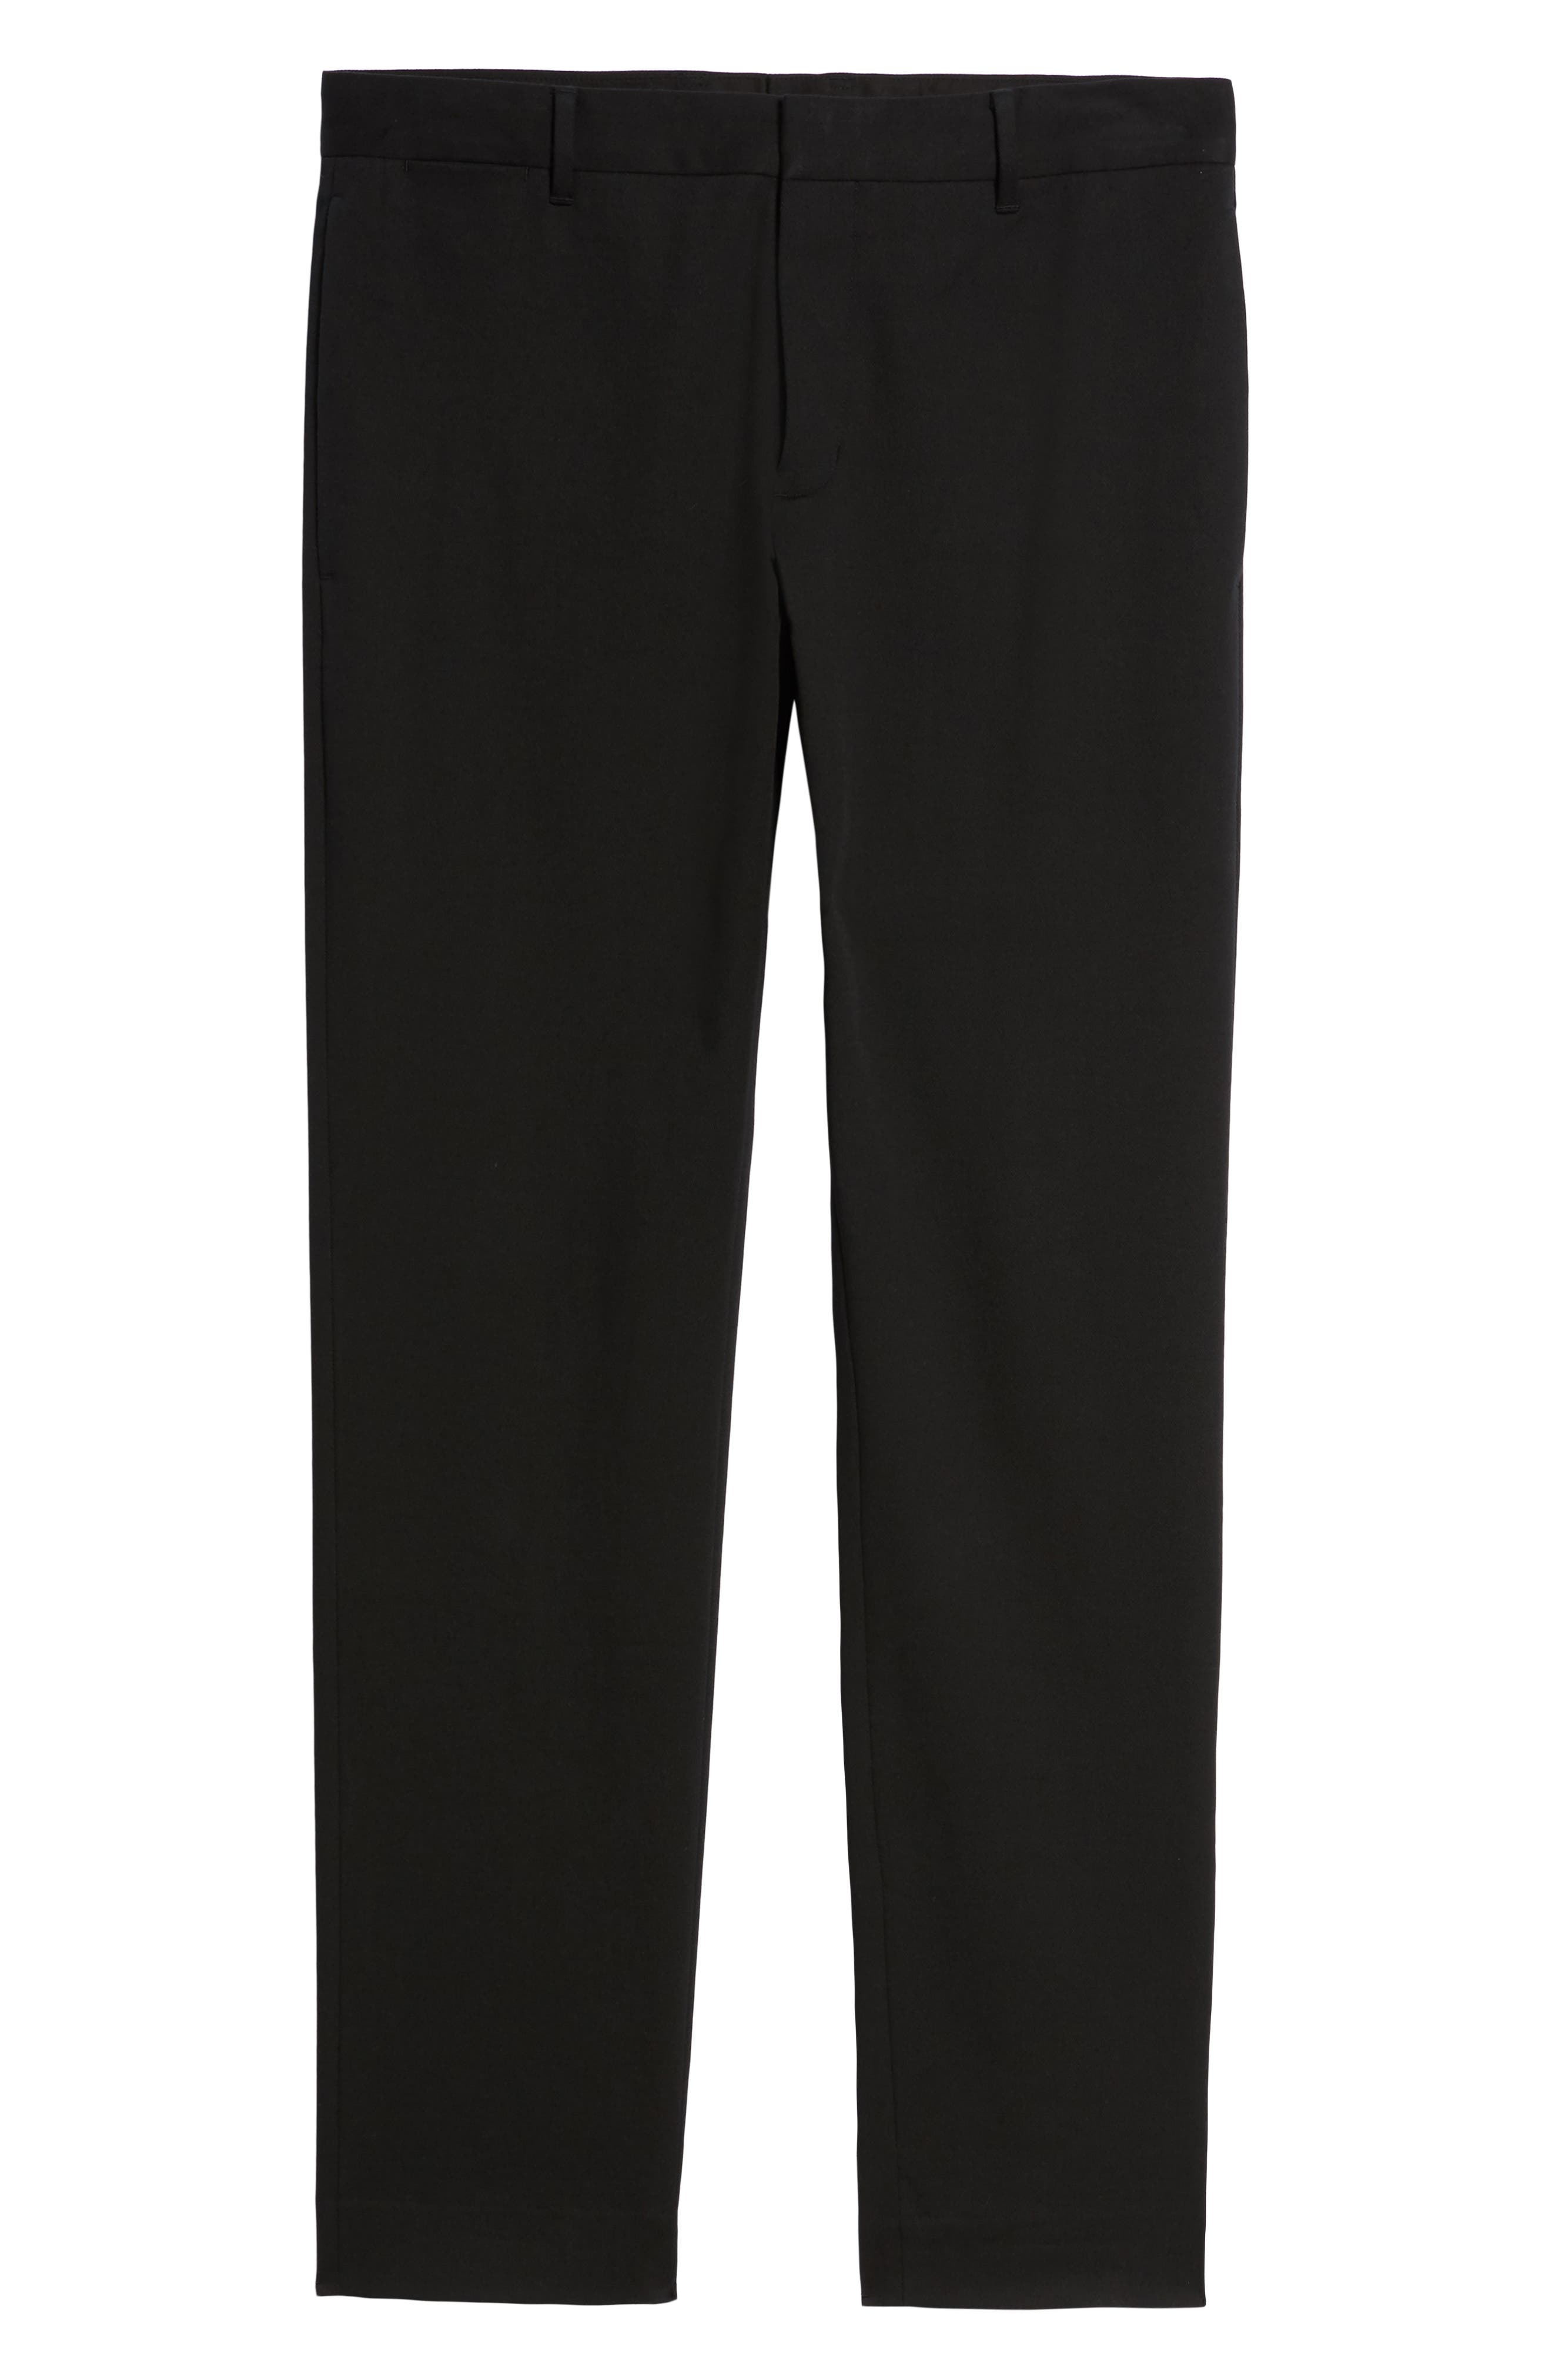 Slim Fit Chinos,                             Alternate thumbnail 6, color,                             440